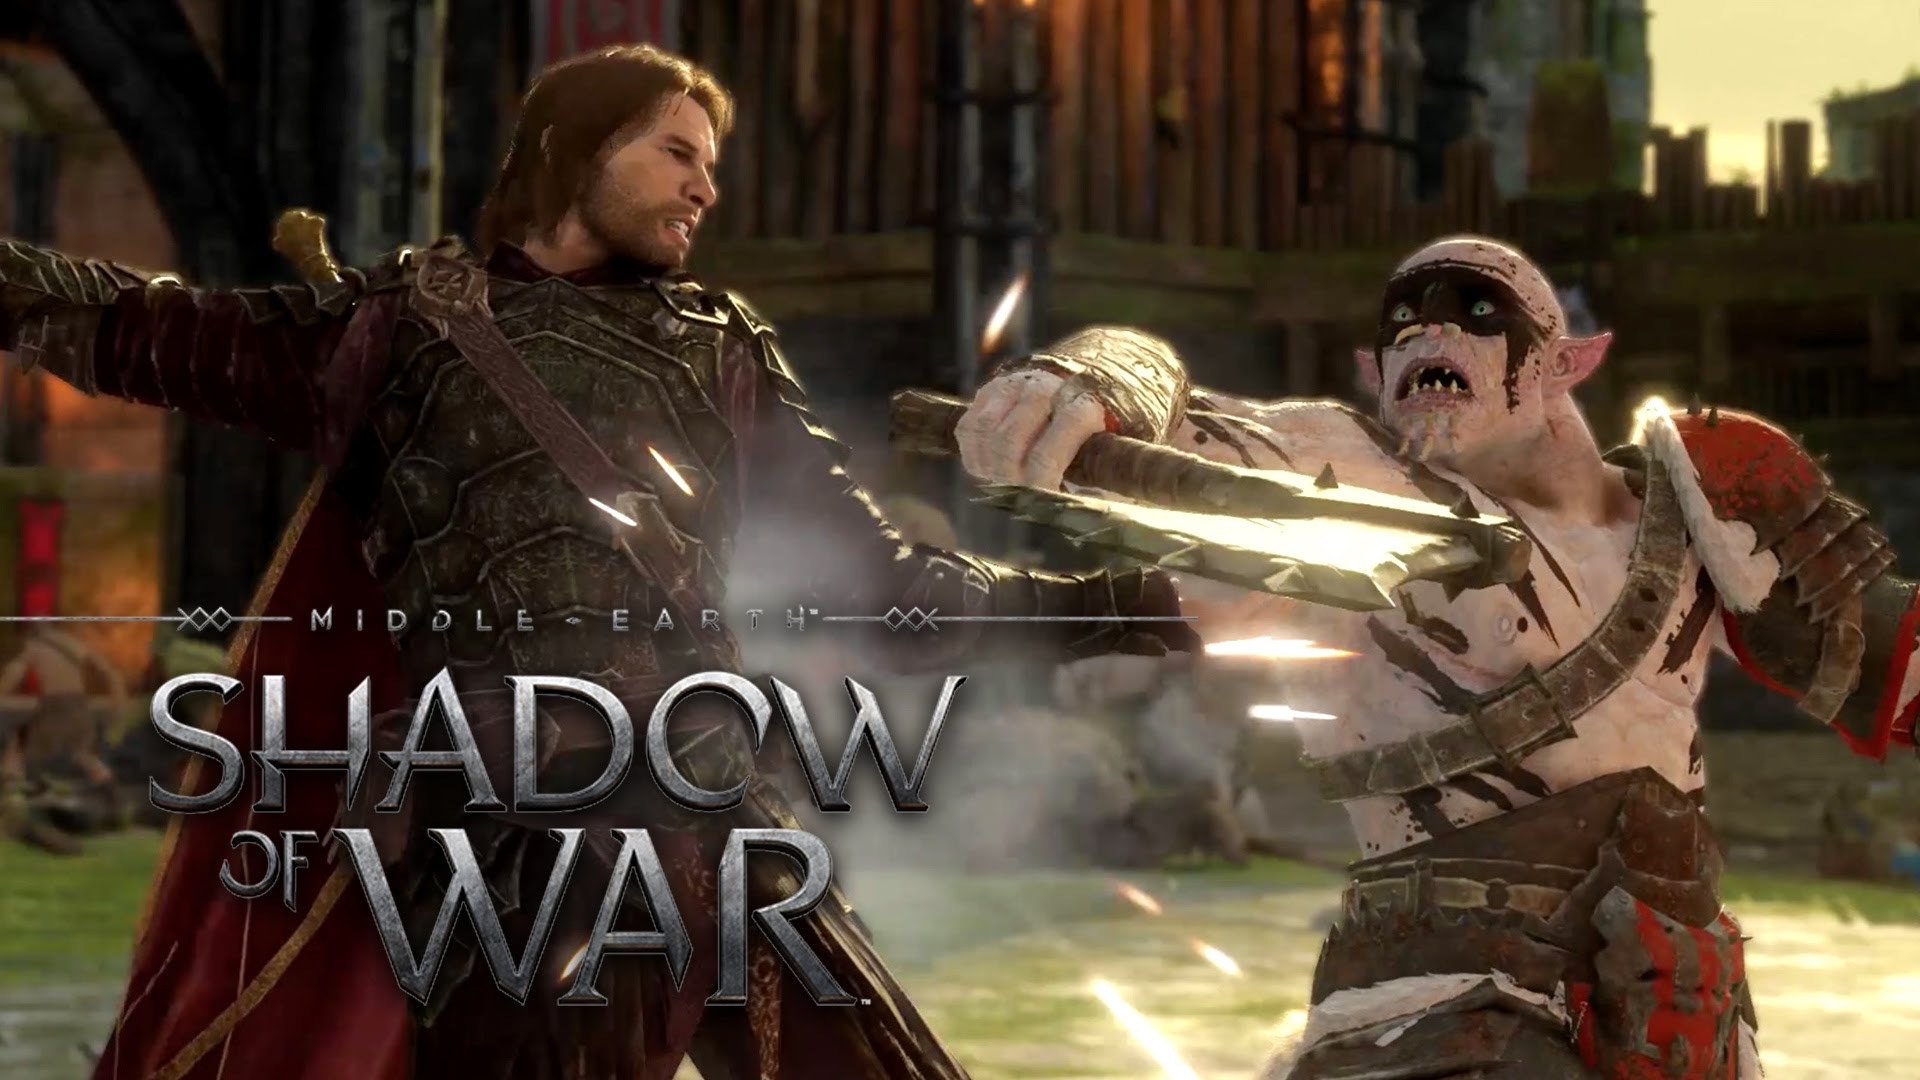 Middle Earth Shadow Of War Hd Wallpaper Background Image